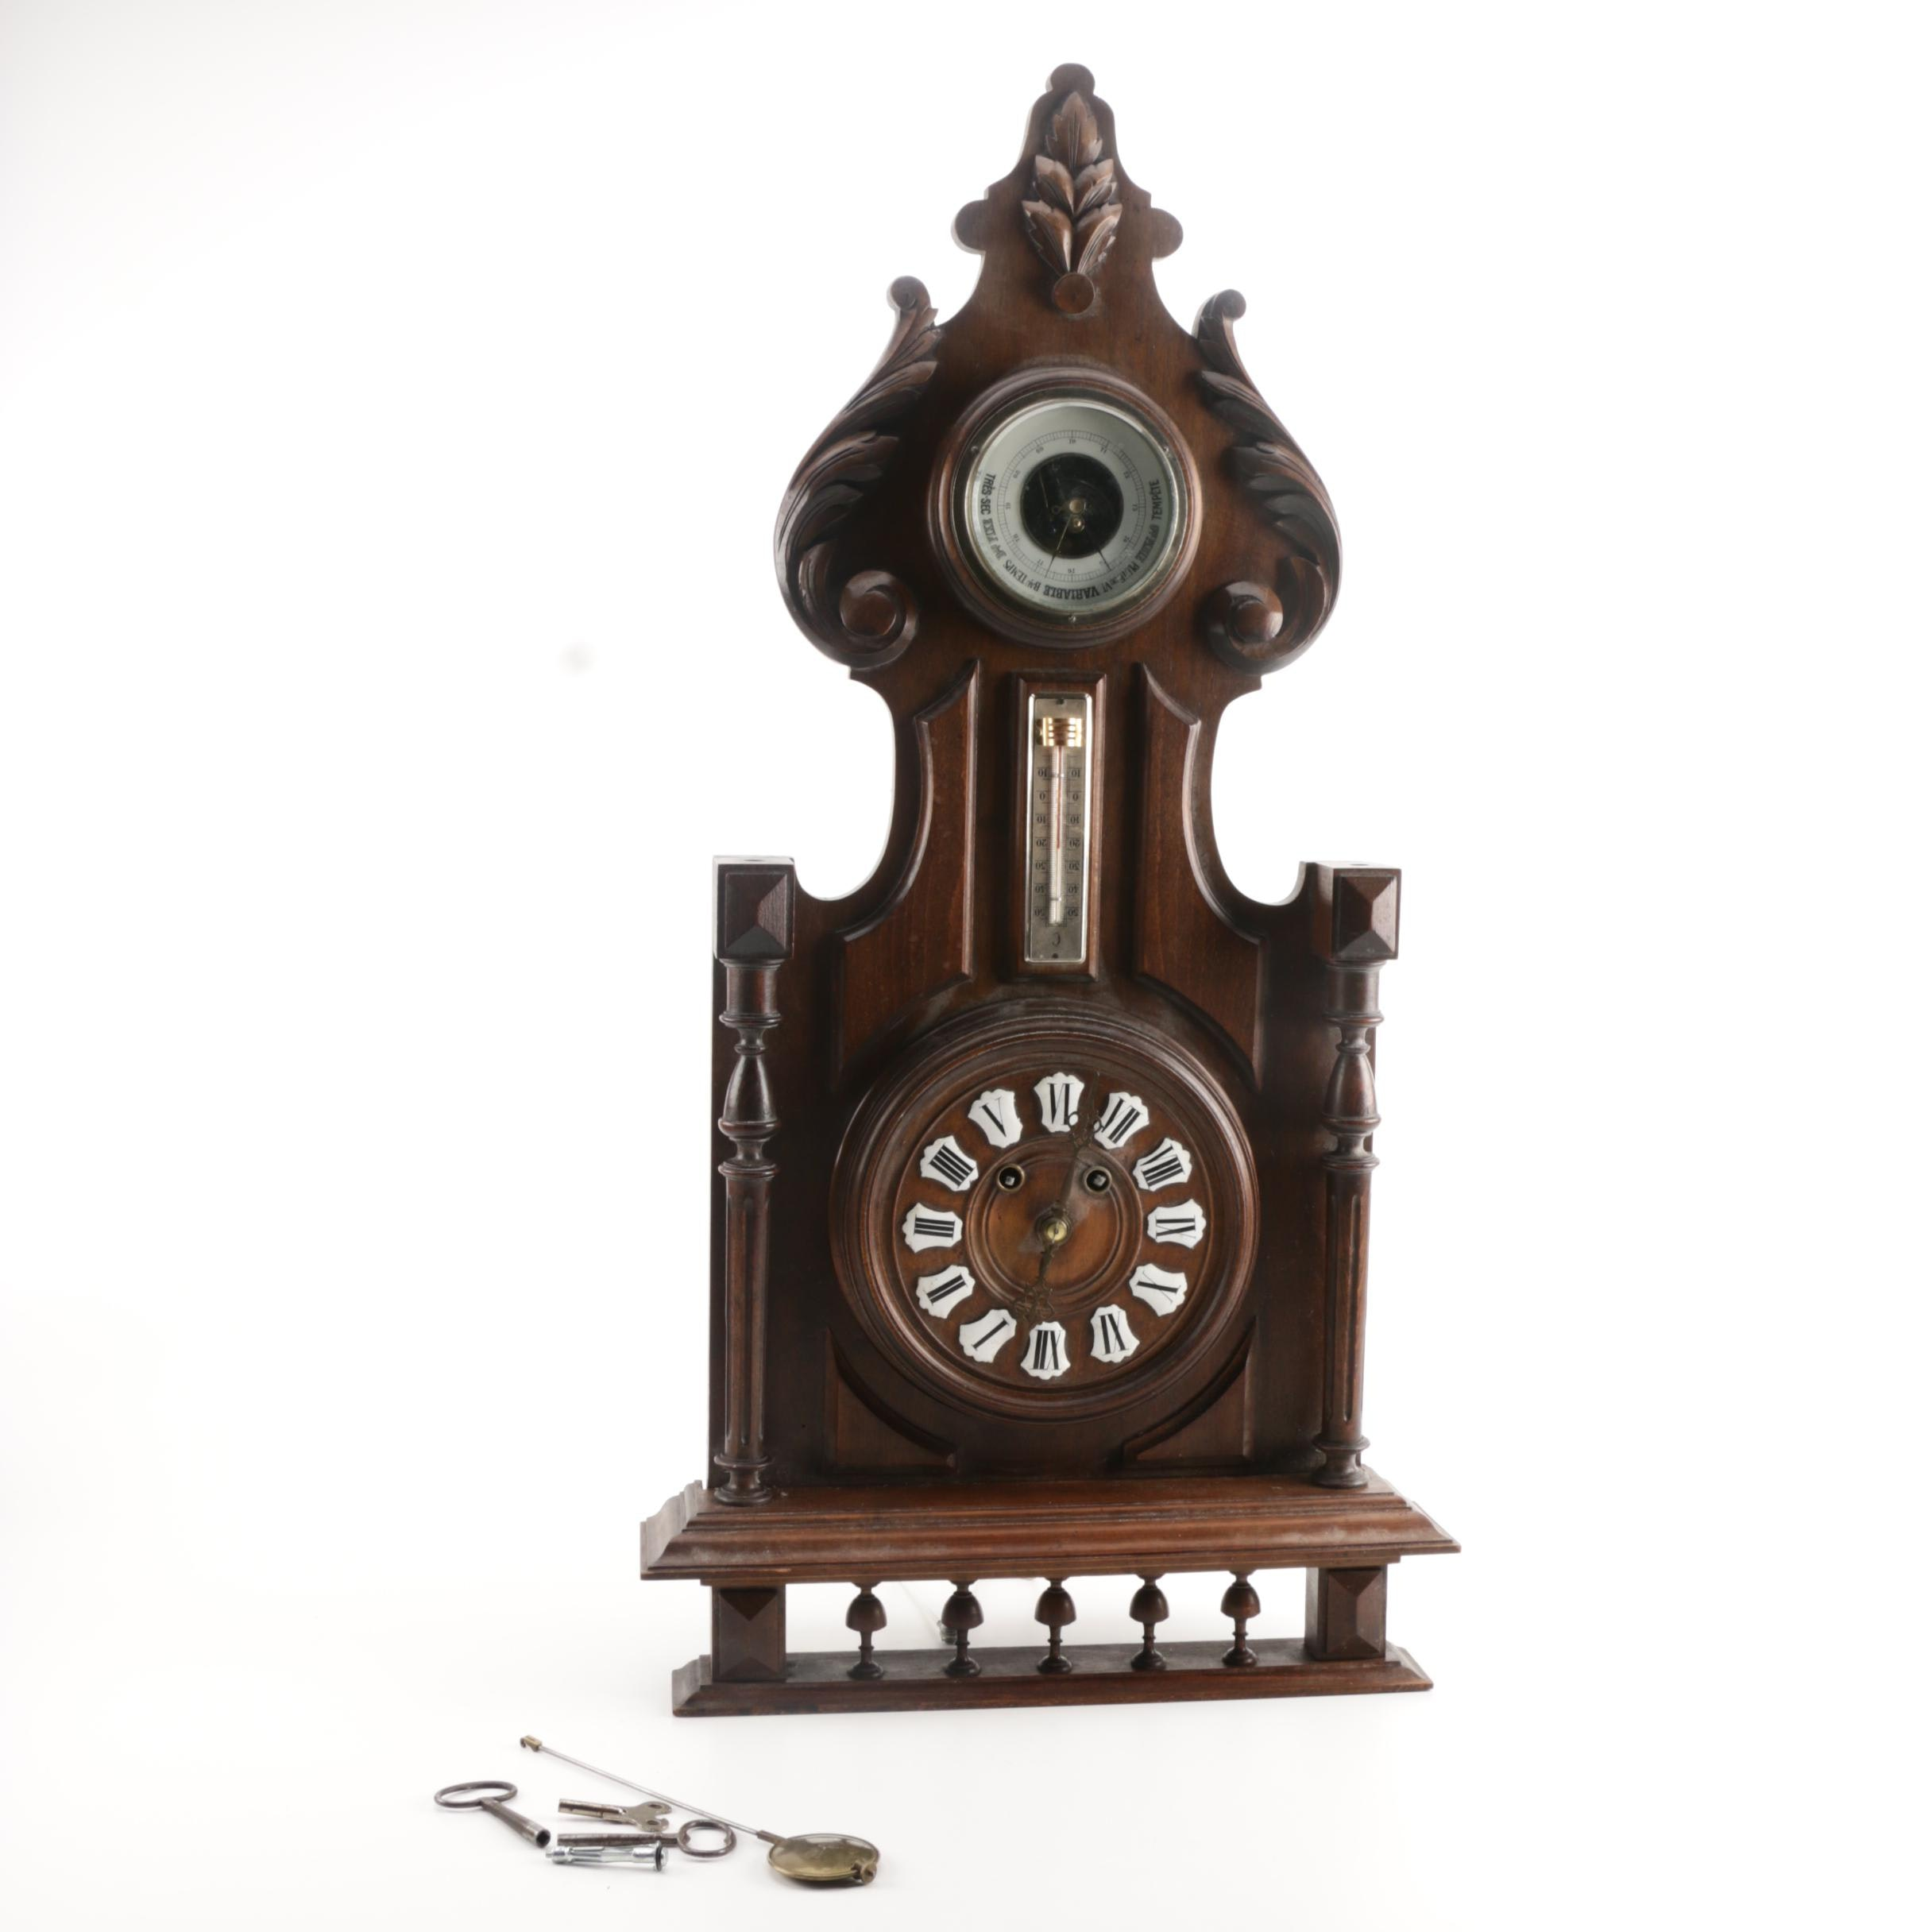 Antique German Wood Wall Clock with Thermometer and Barometer